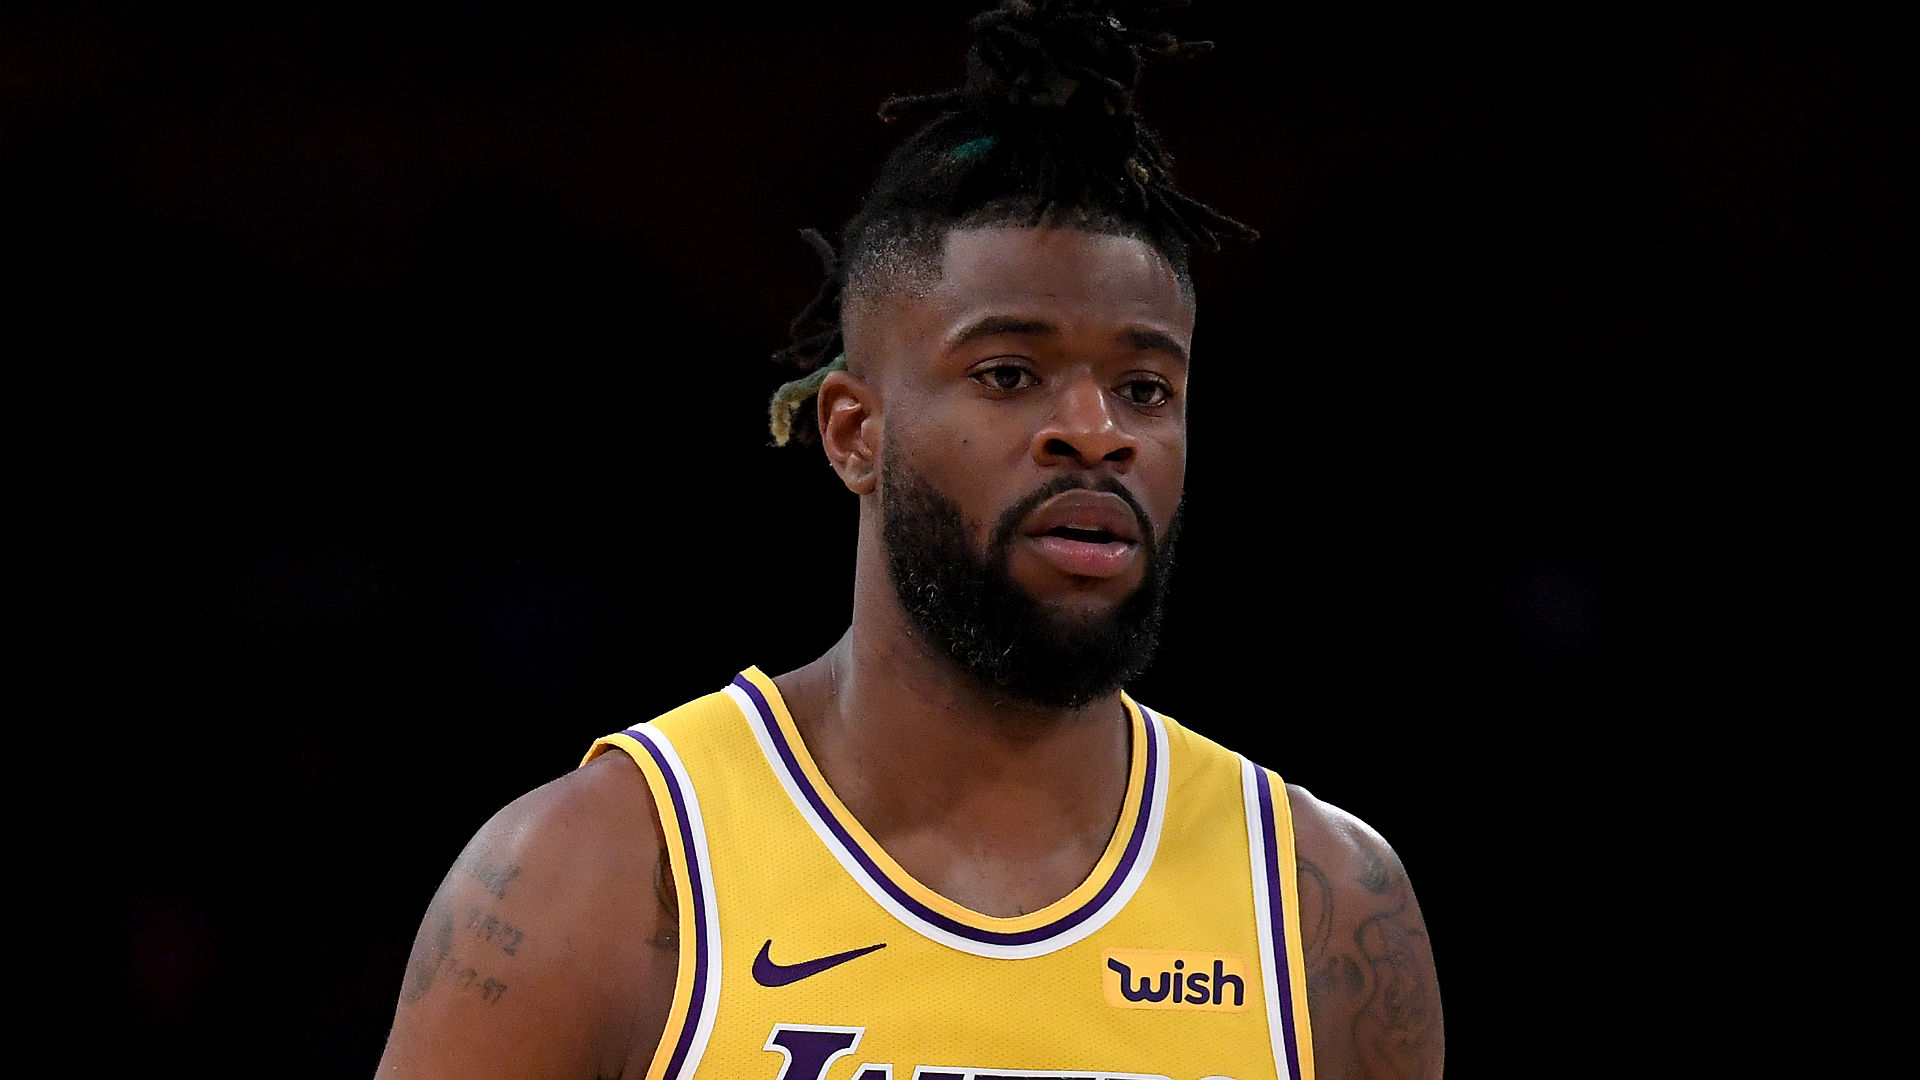 Reggie Bullock has back surgery one day after signing with Knicks